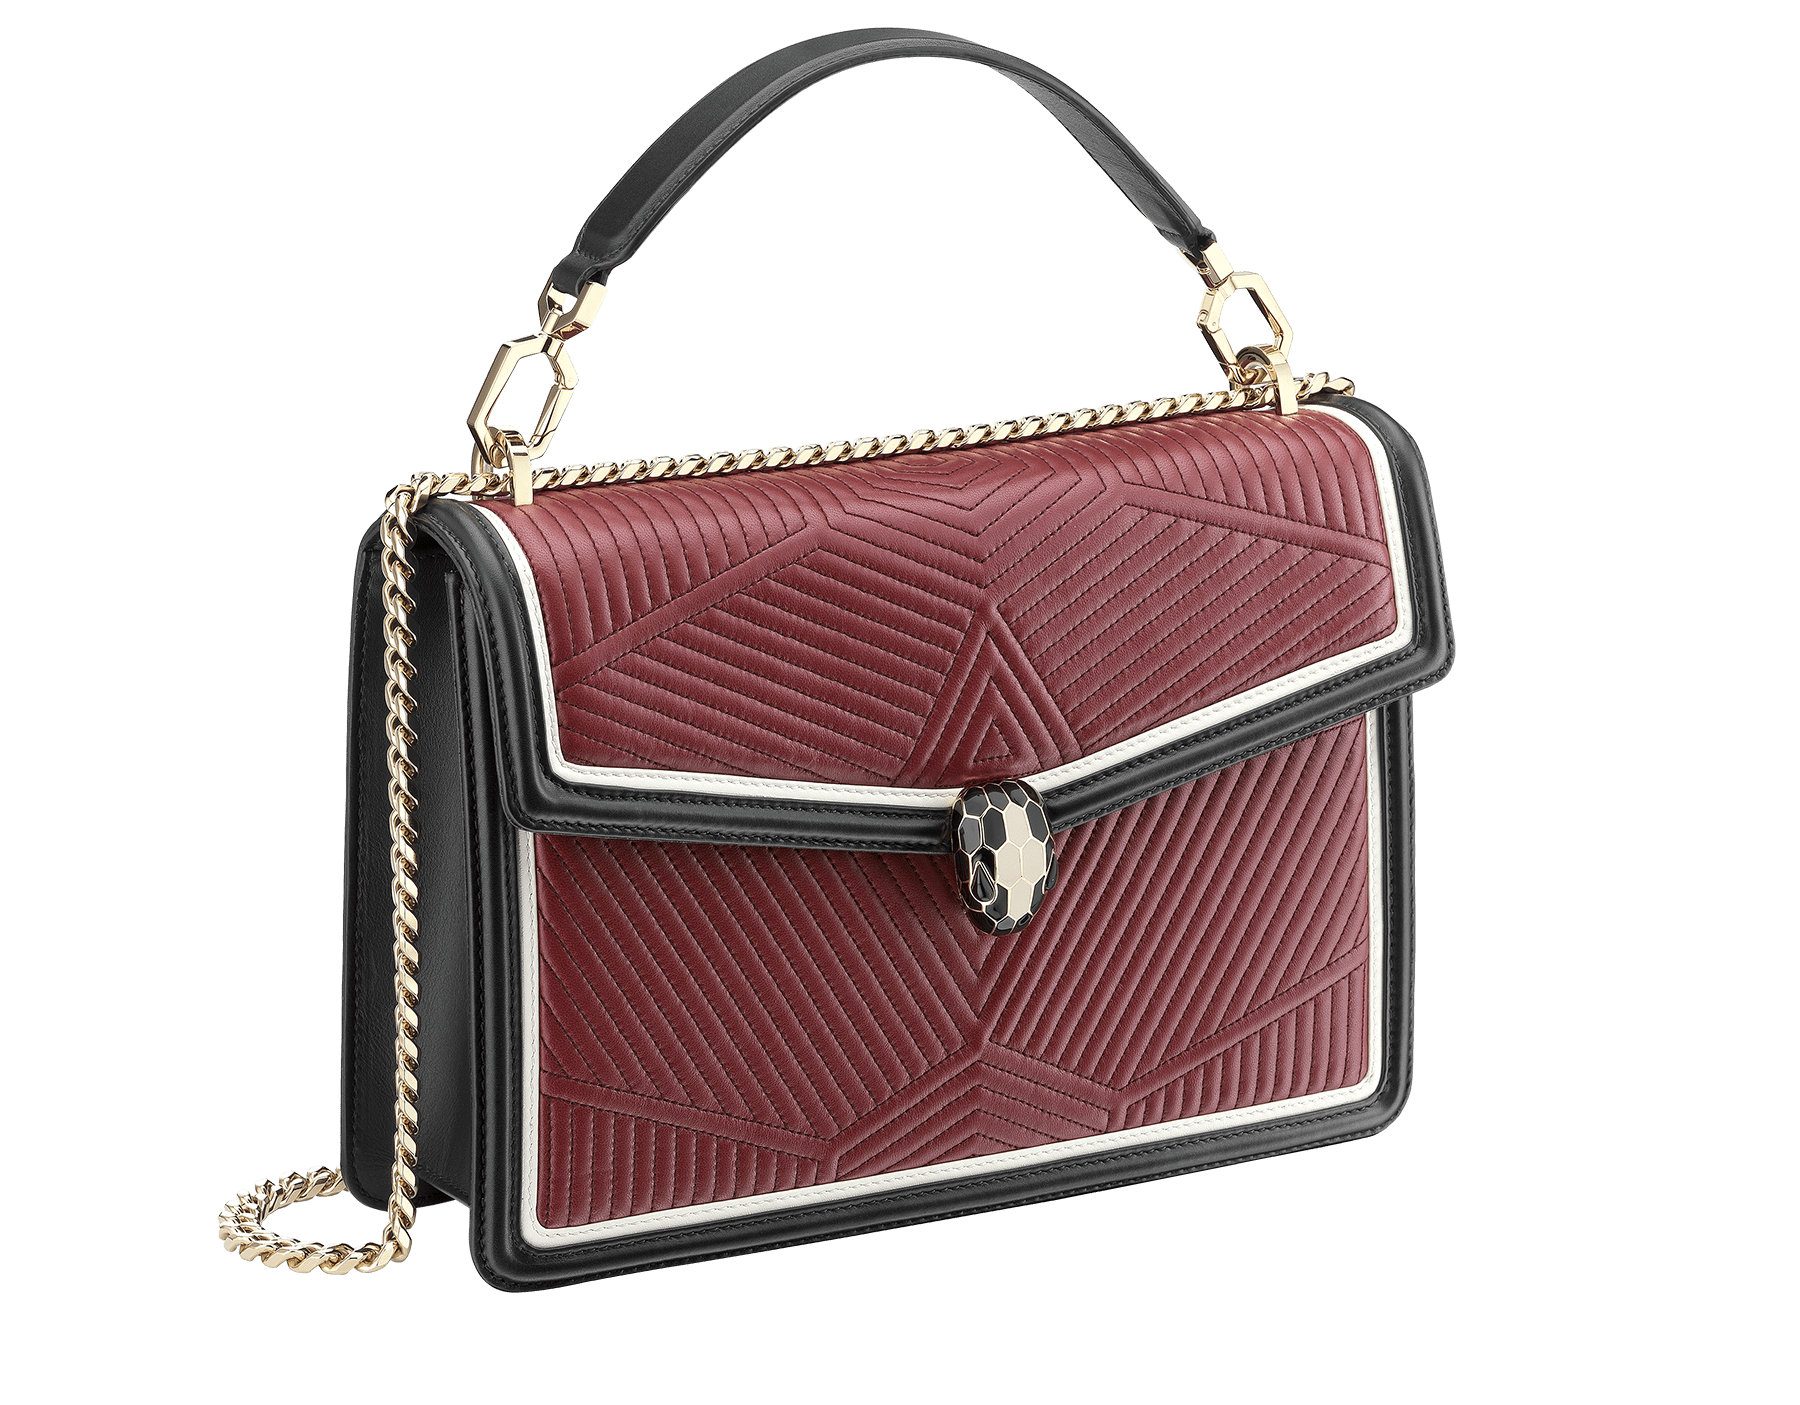 Top handle bag Serpenti Forever featuring a Framed Quilted motif in roman garnet nappa and black smooth calf leather. Brass light gold plated tempting snake head closure in black and white enamel, with eyes in black onyx. 973-FQDc image 2